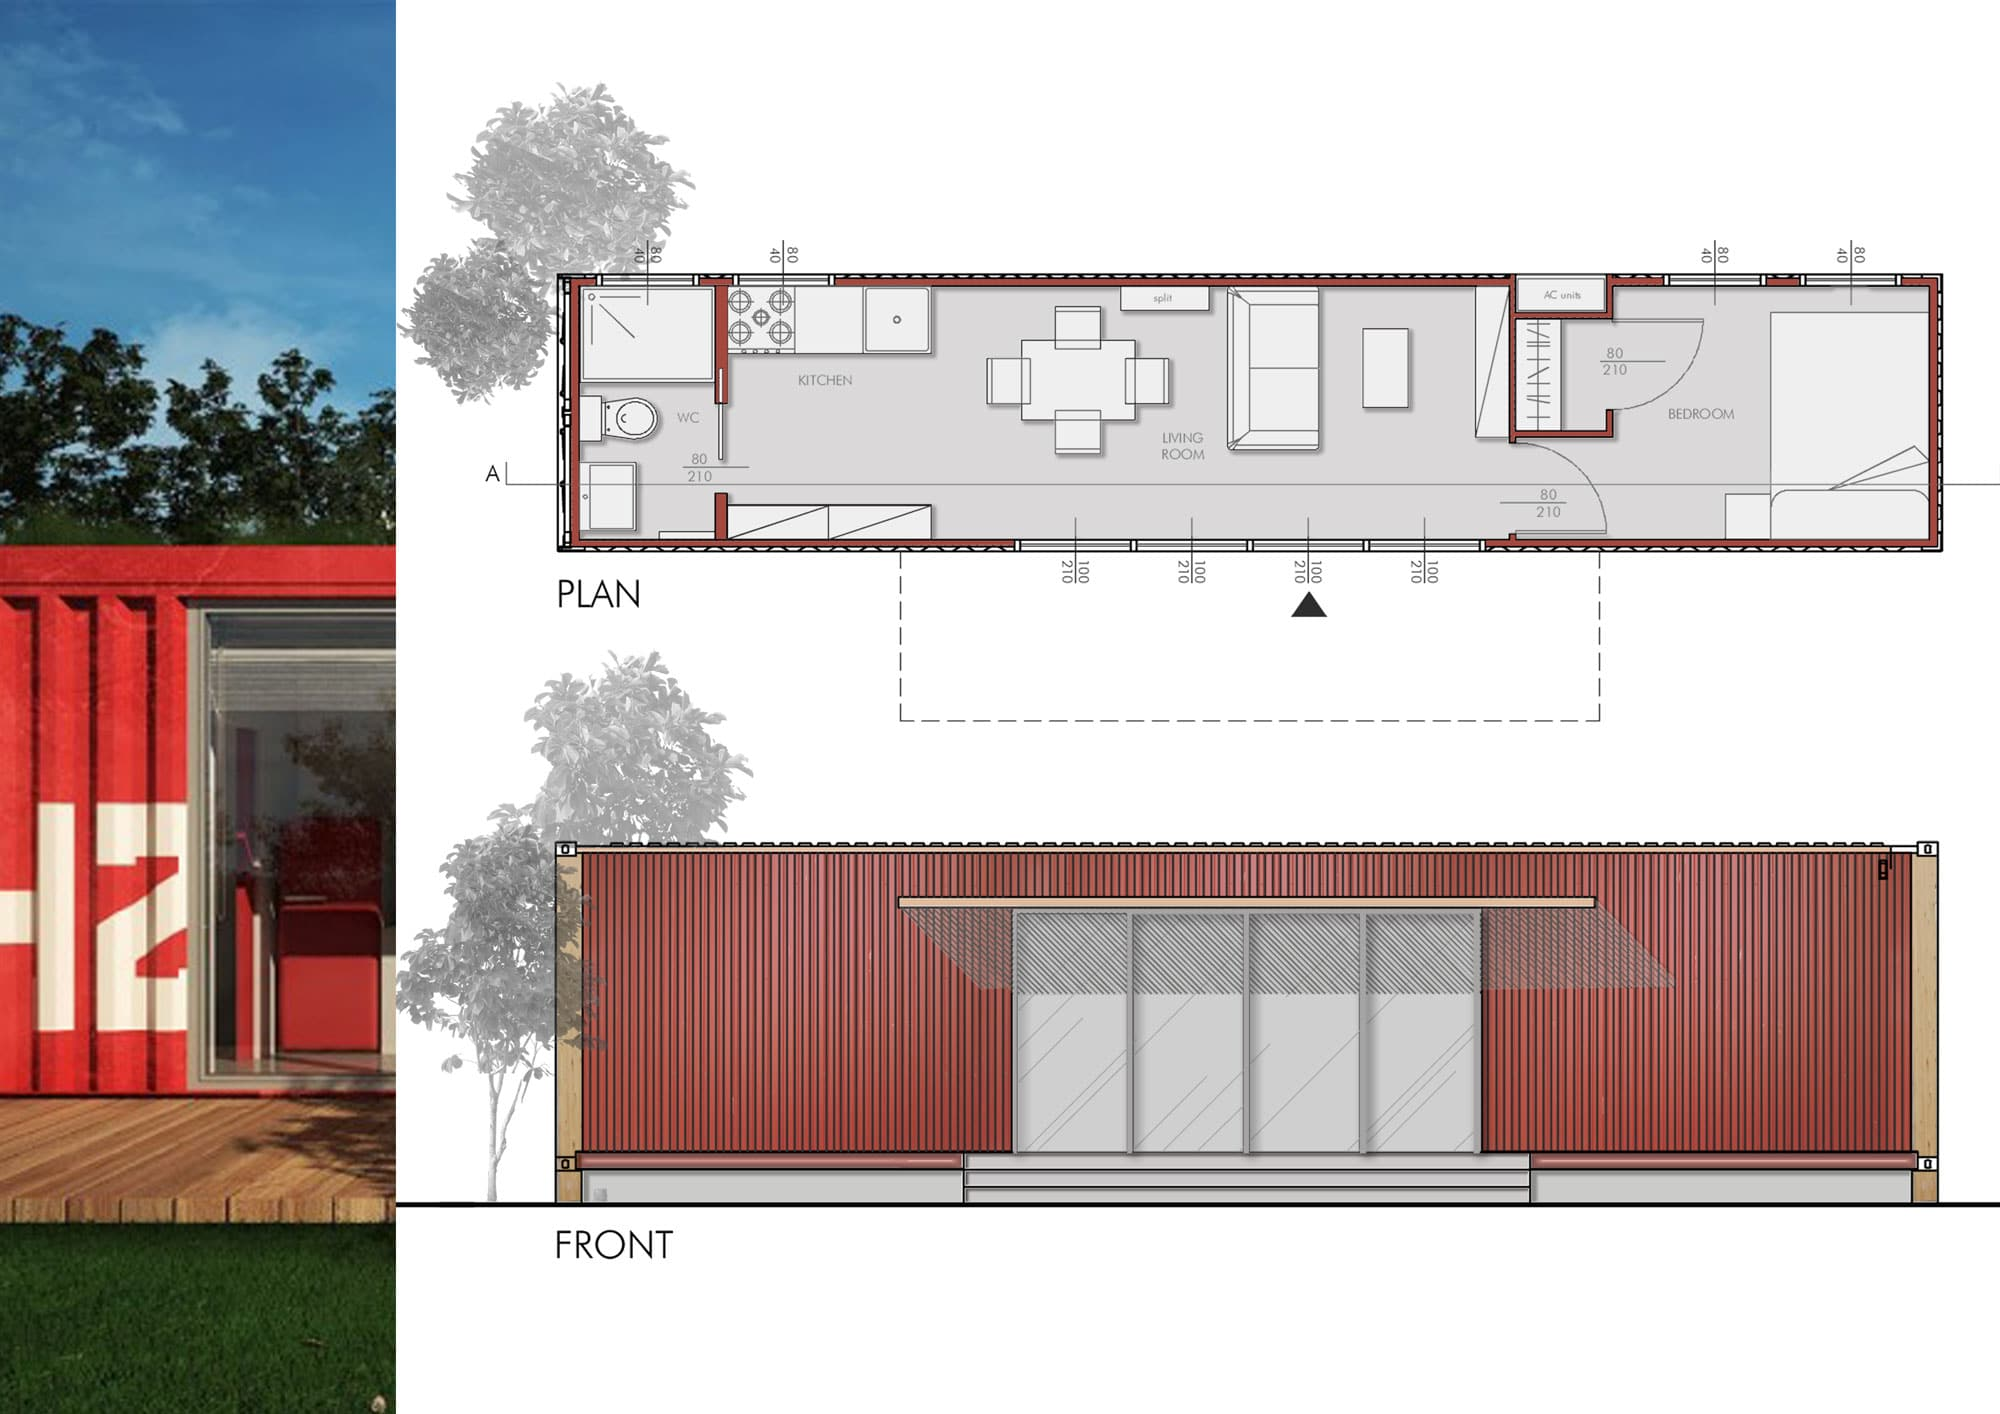 Design for a modern house in a container architects srl for Finding an architect for a remodel